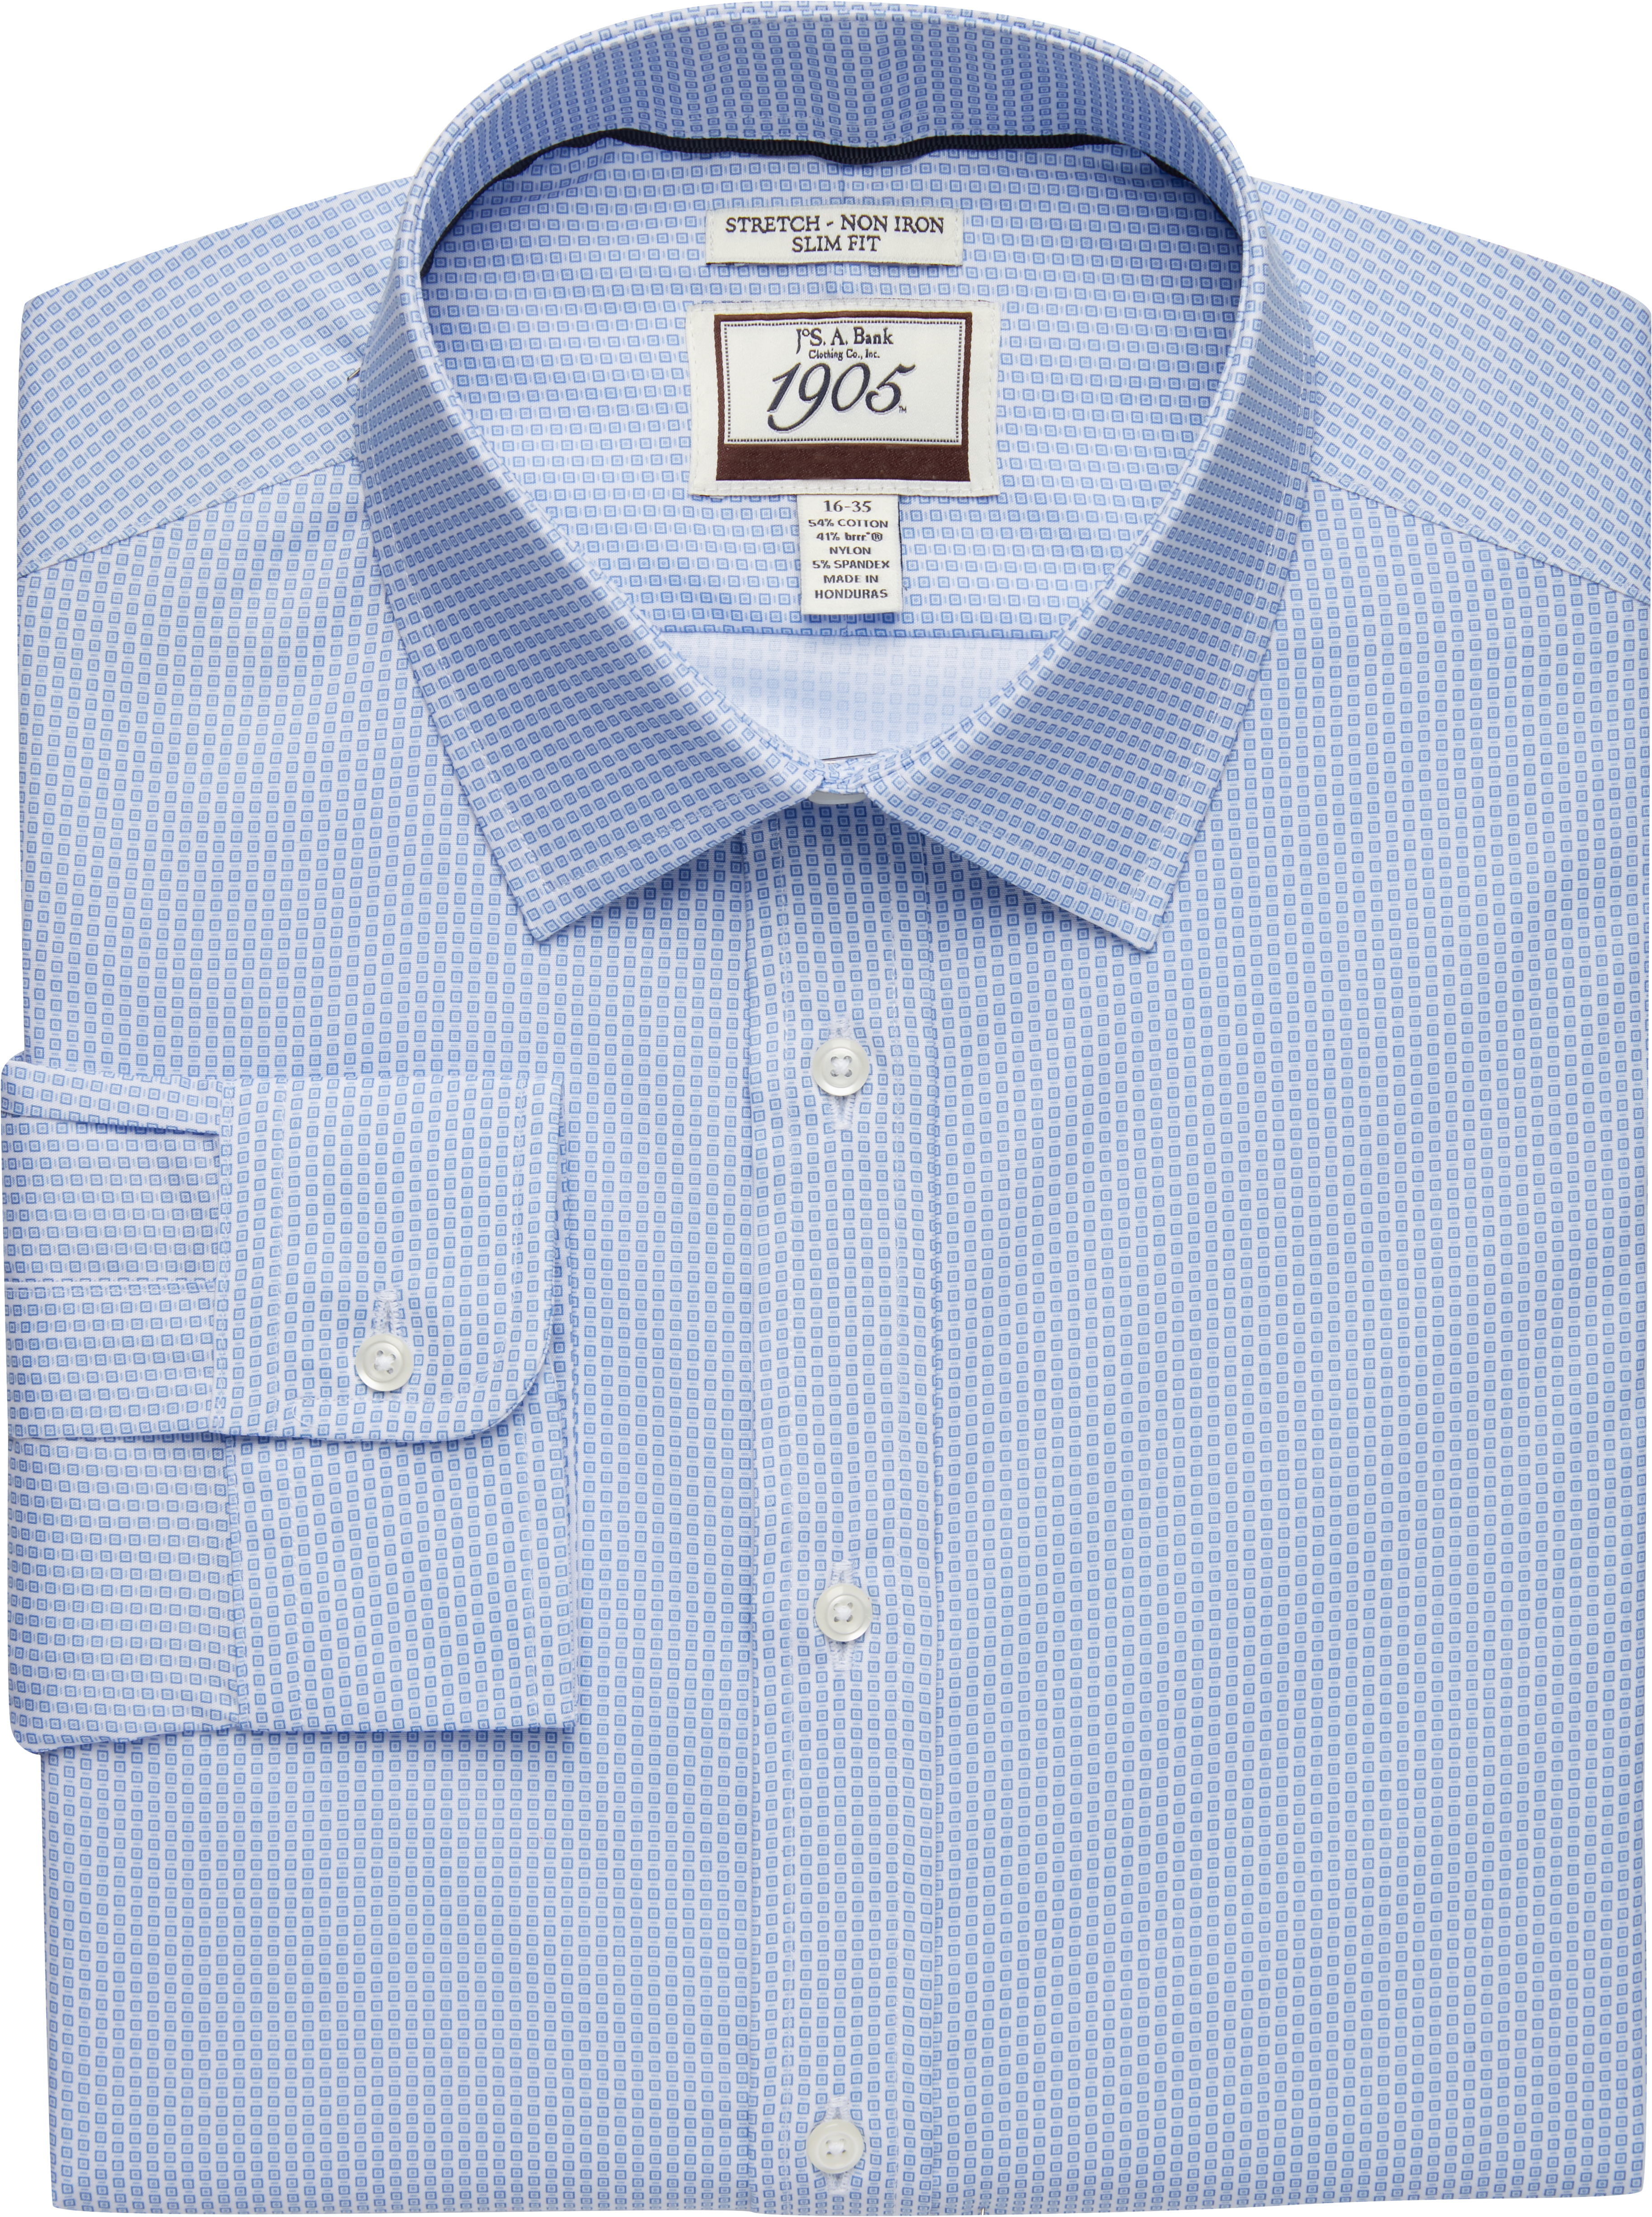 1905 Collection Slim Fit Spread Collar Square Pattern Dress Shirt